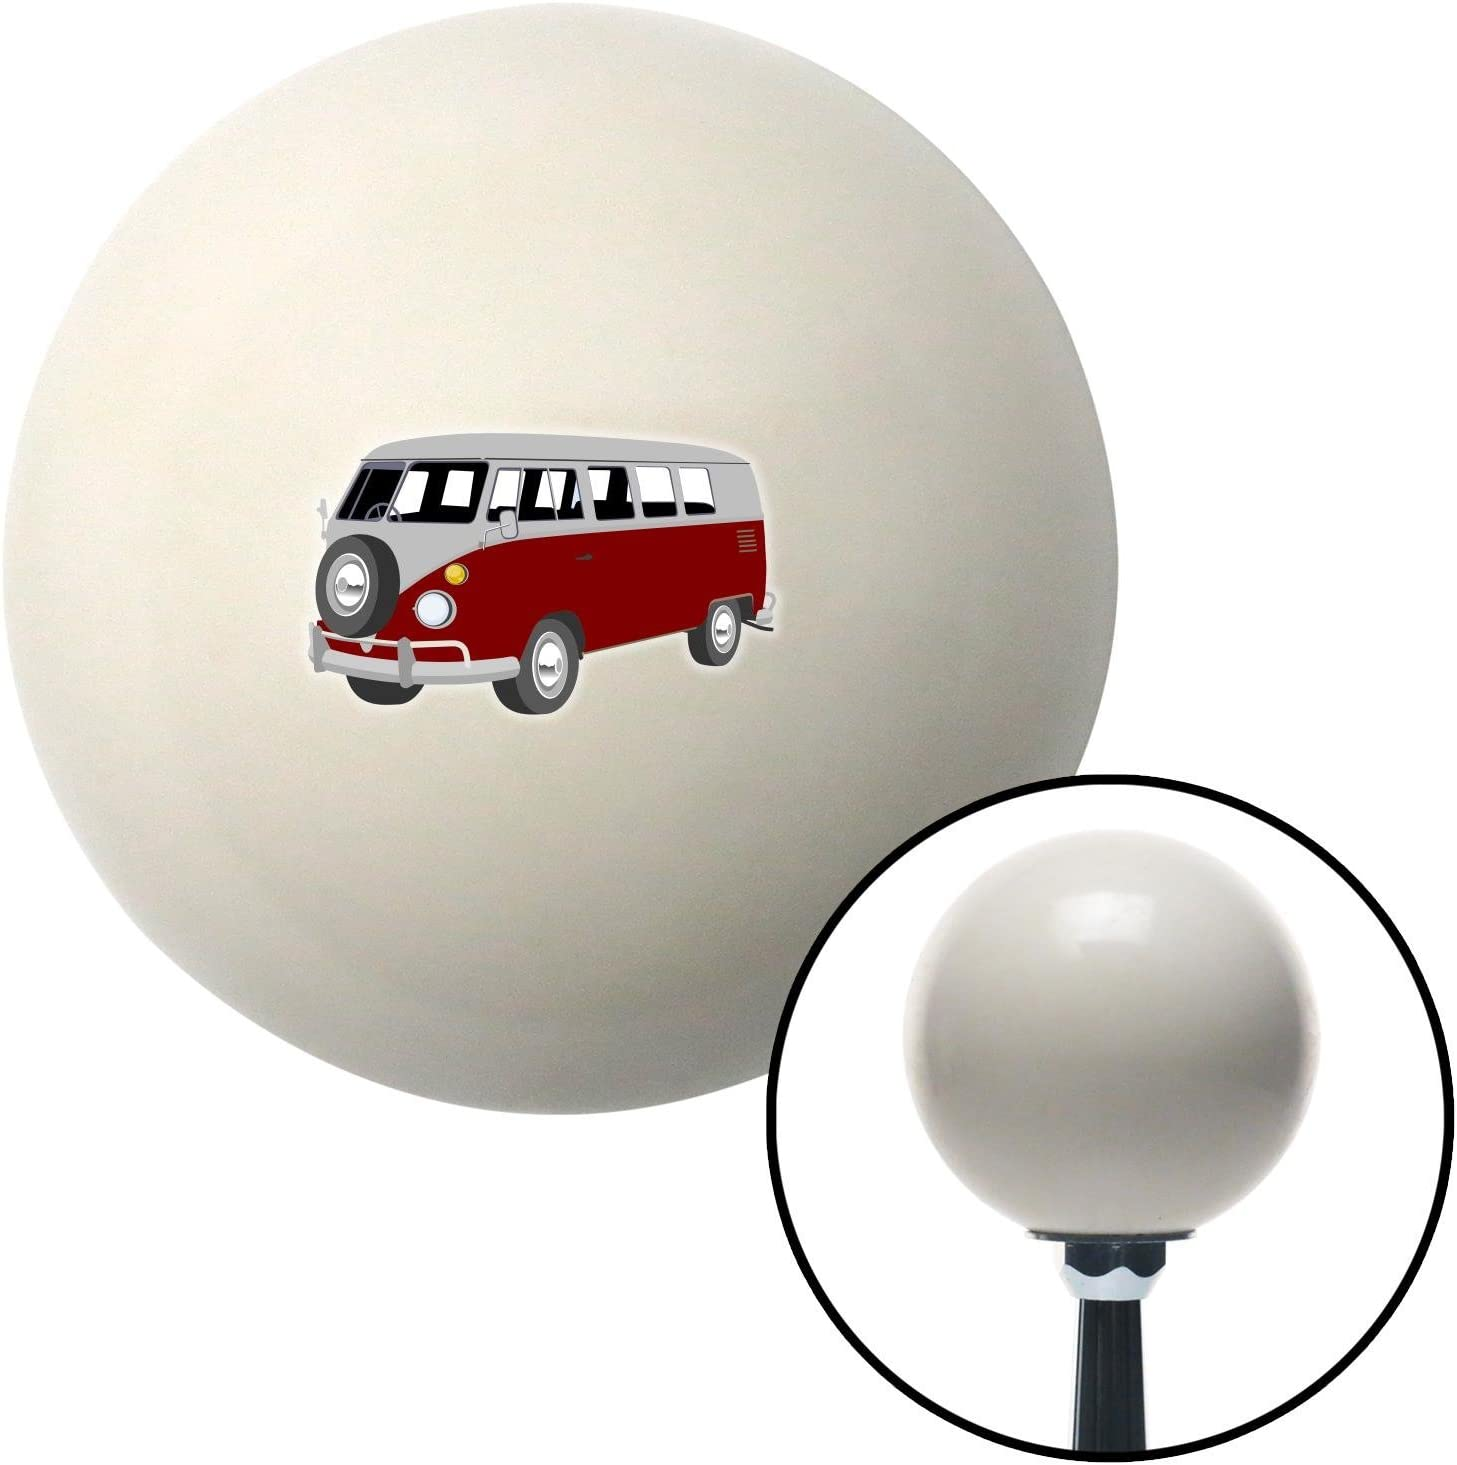 American Shifter 77357 Ivory Shift Knob with M16 x 1.5 Insert Red Camper